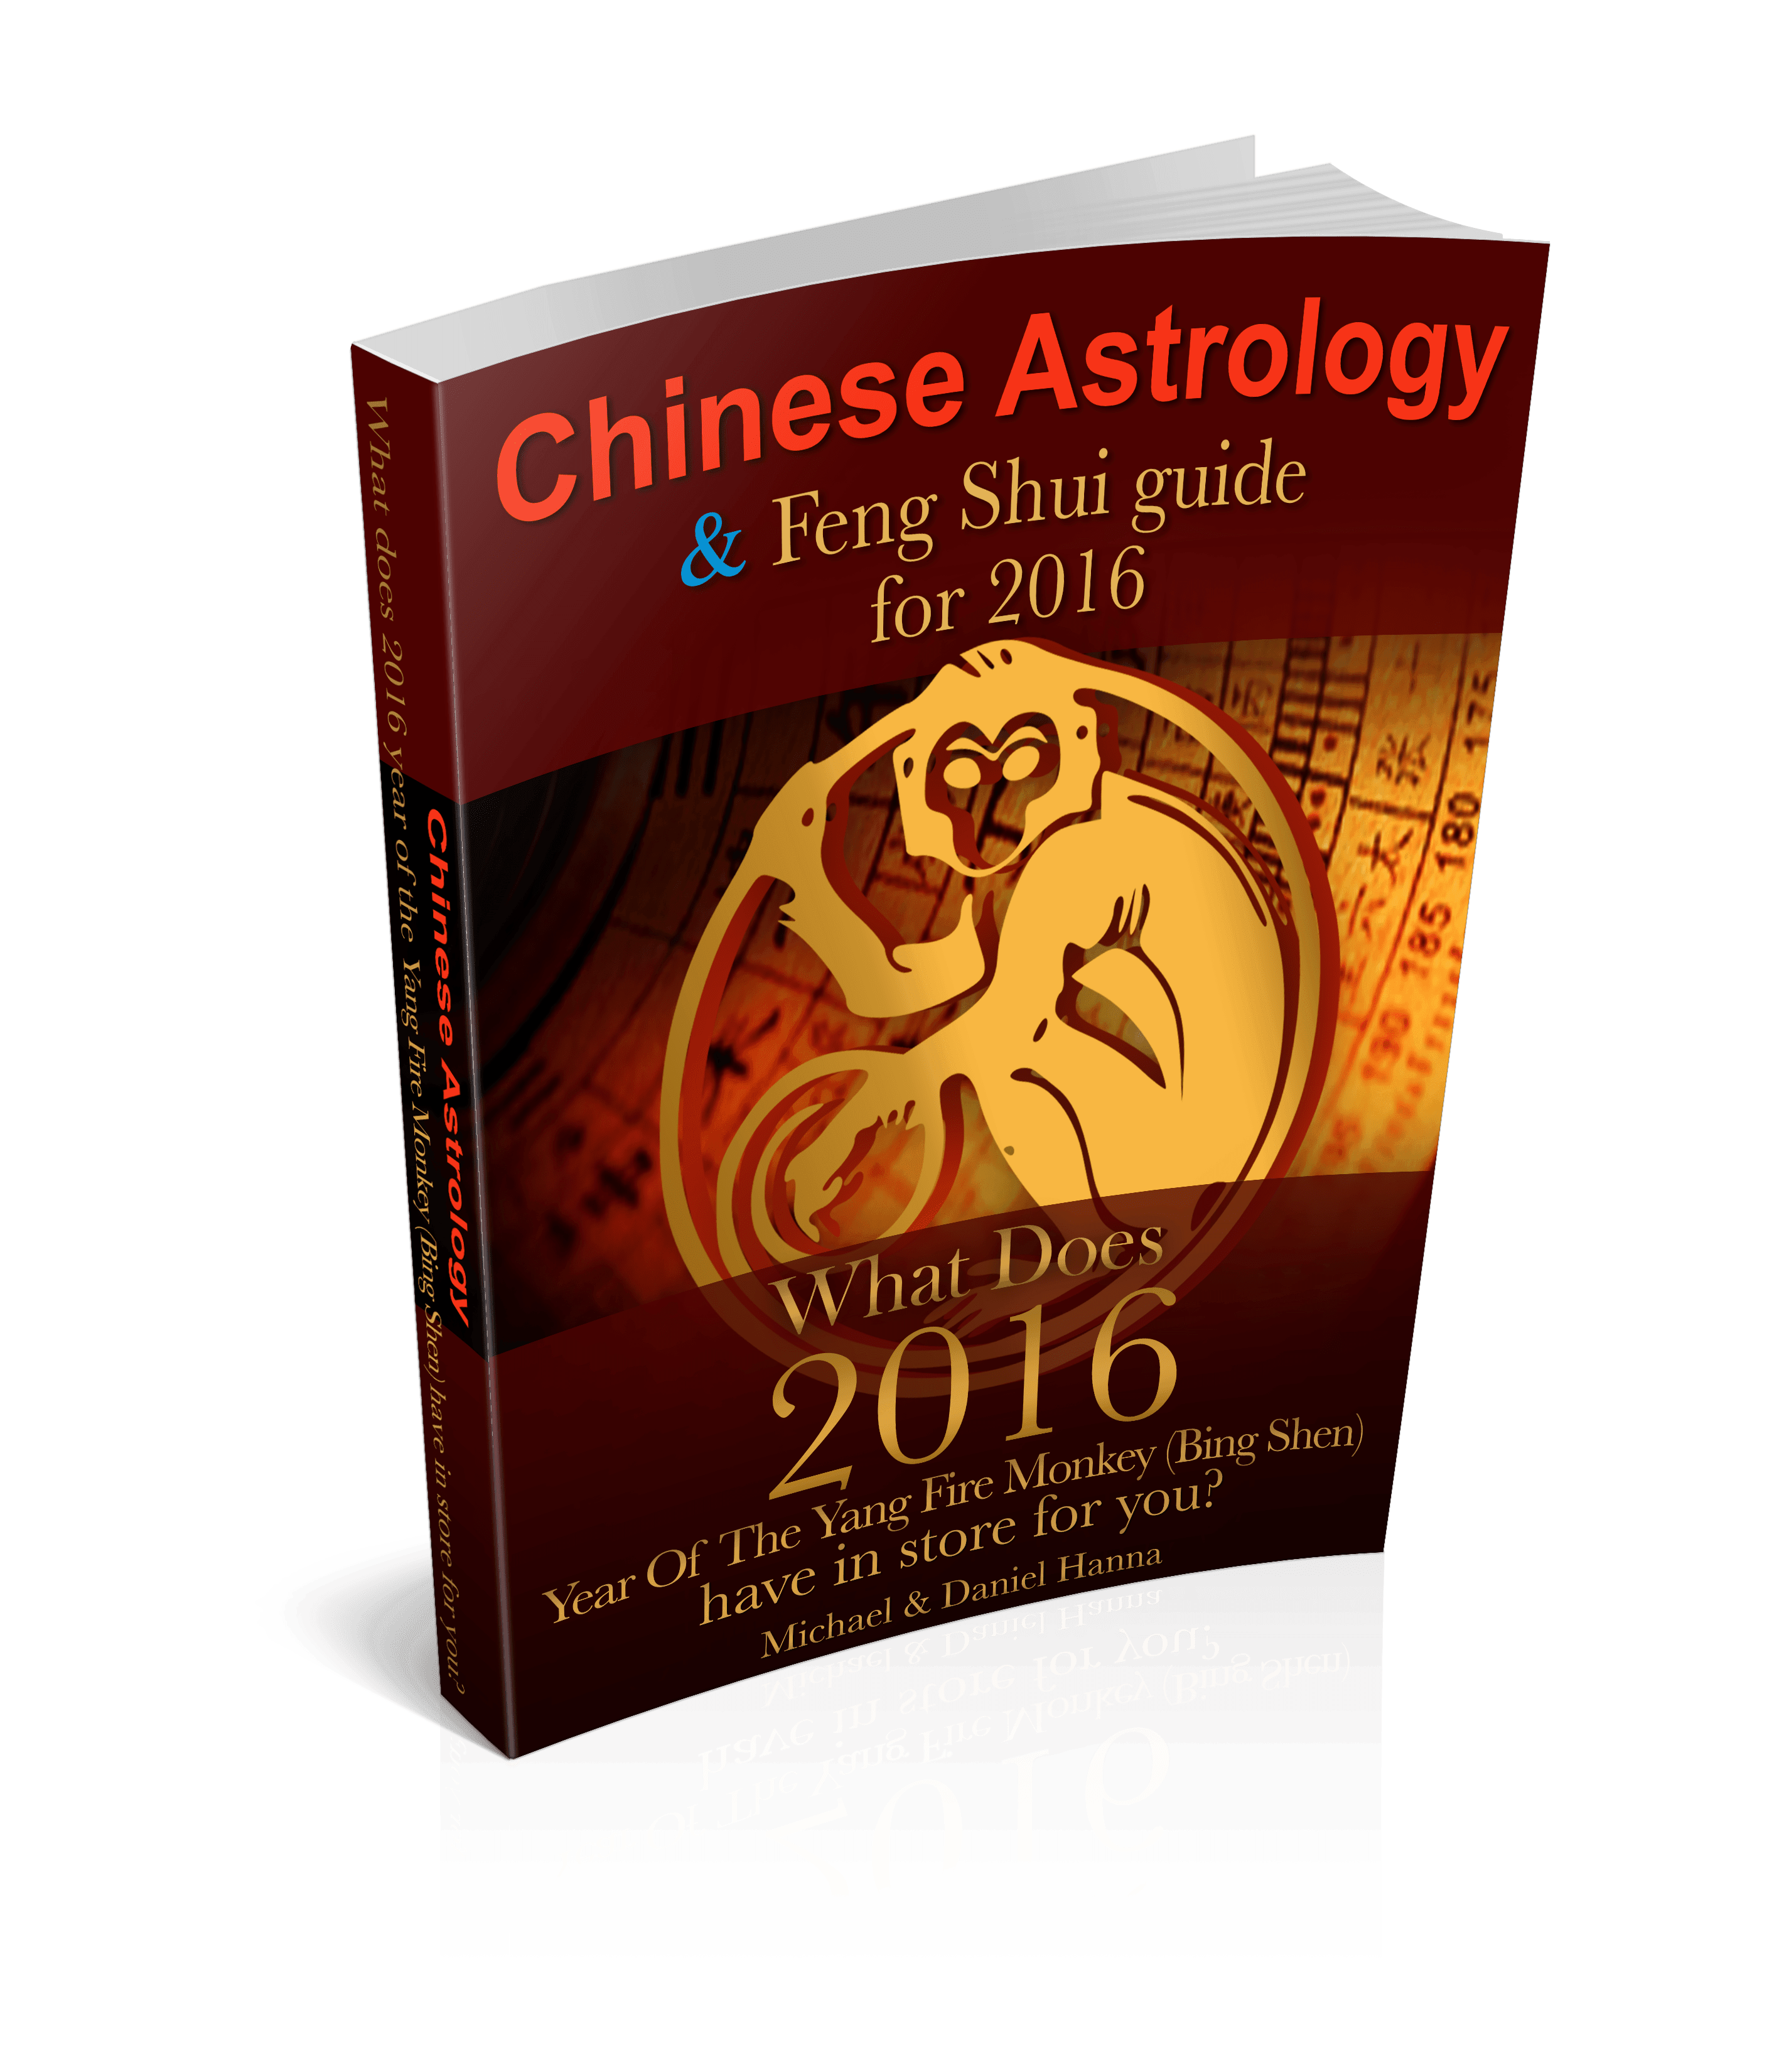 Chinese astrology, Tong Shu Almanac and Feng Shui recommendations for Yang Fire Monkey 2016